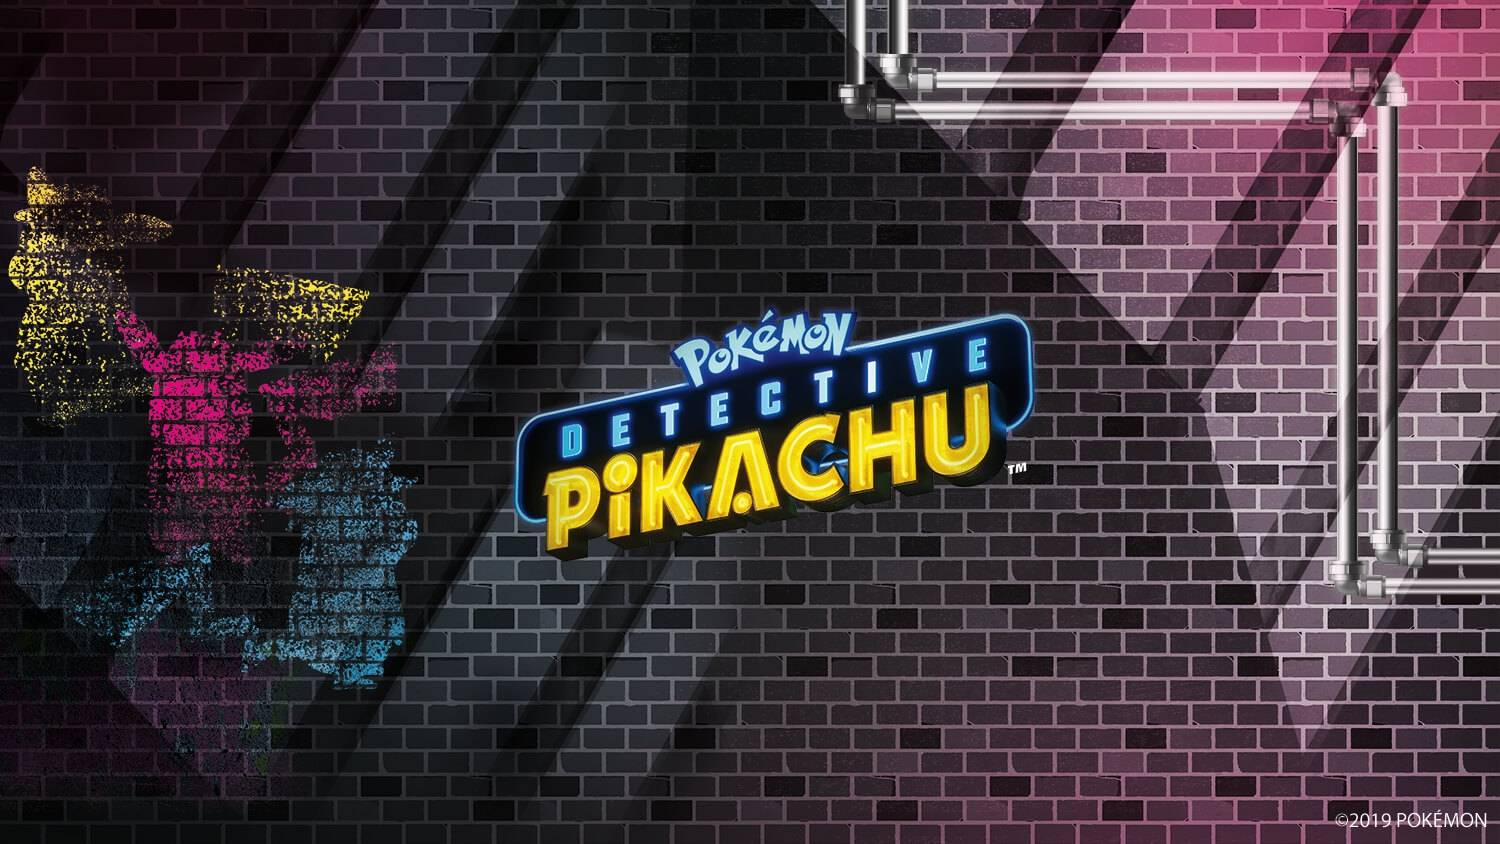 Build an open-and-shut case with Detective Pikachu building sets!